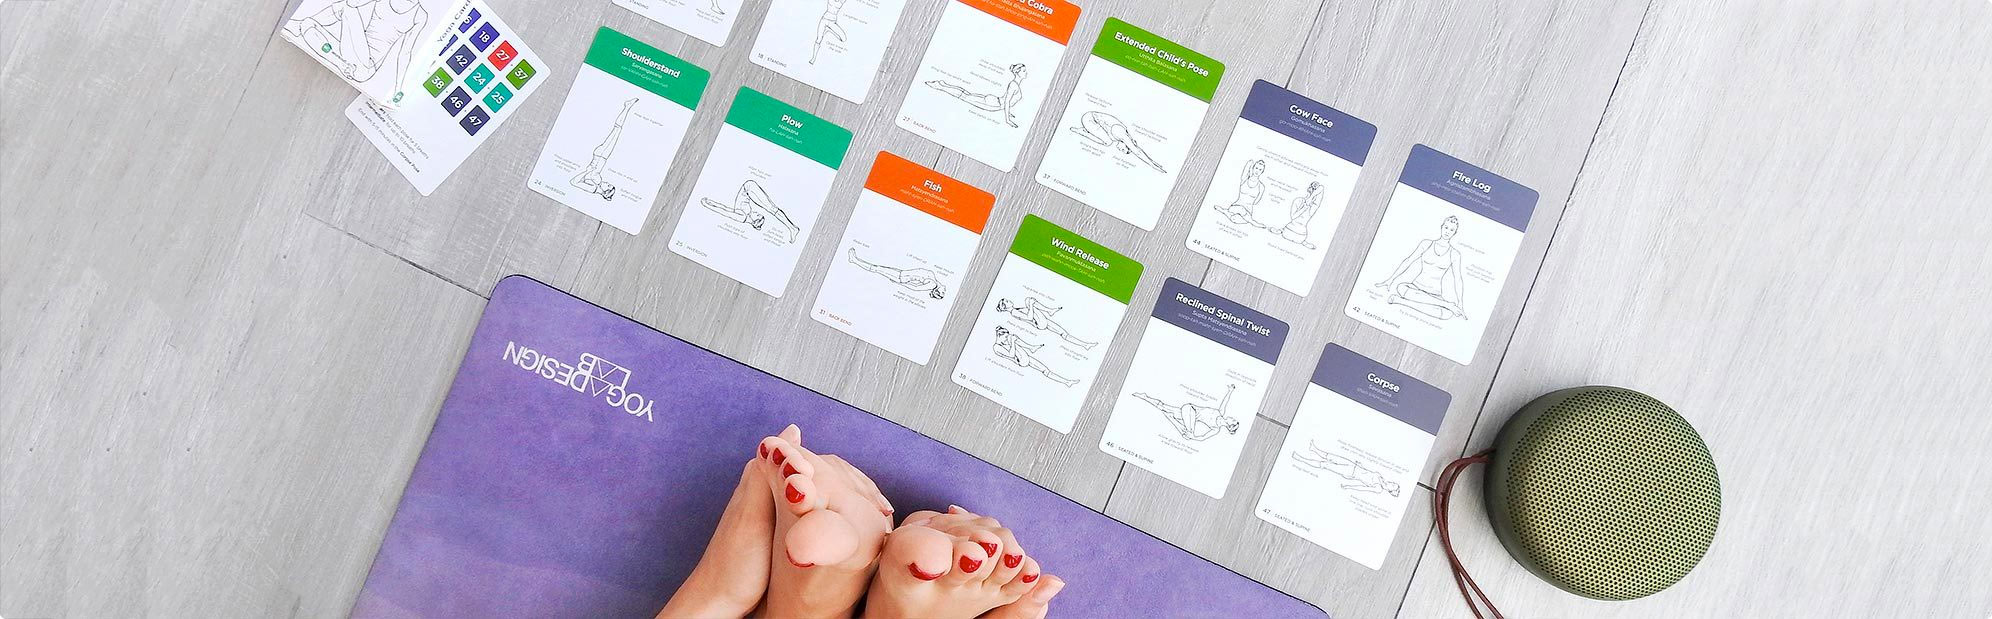 Yoga Cards by WorkoutLabs